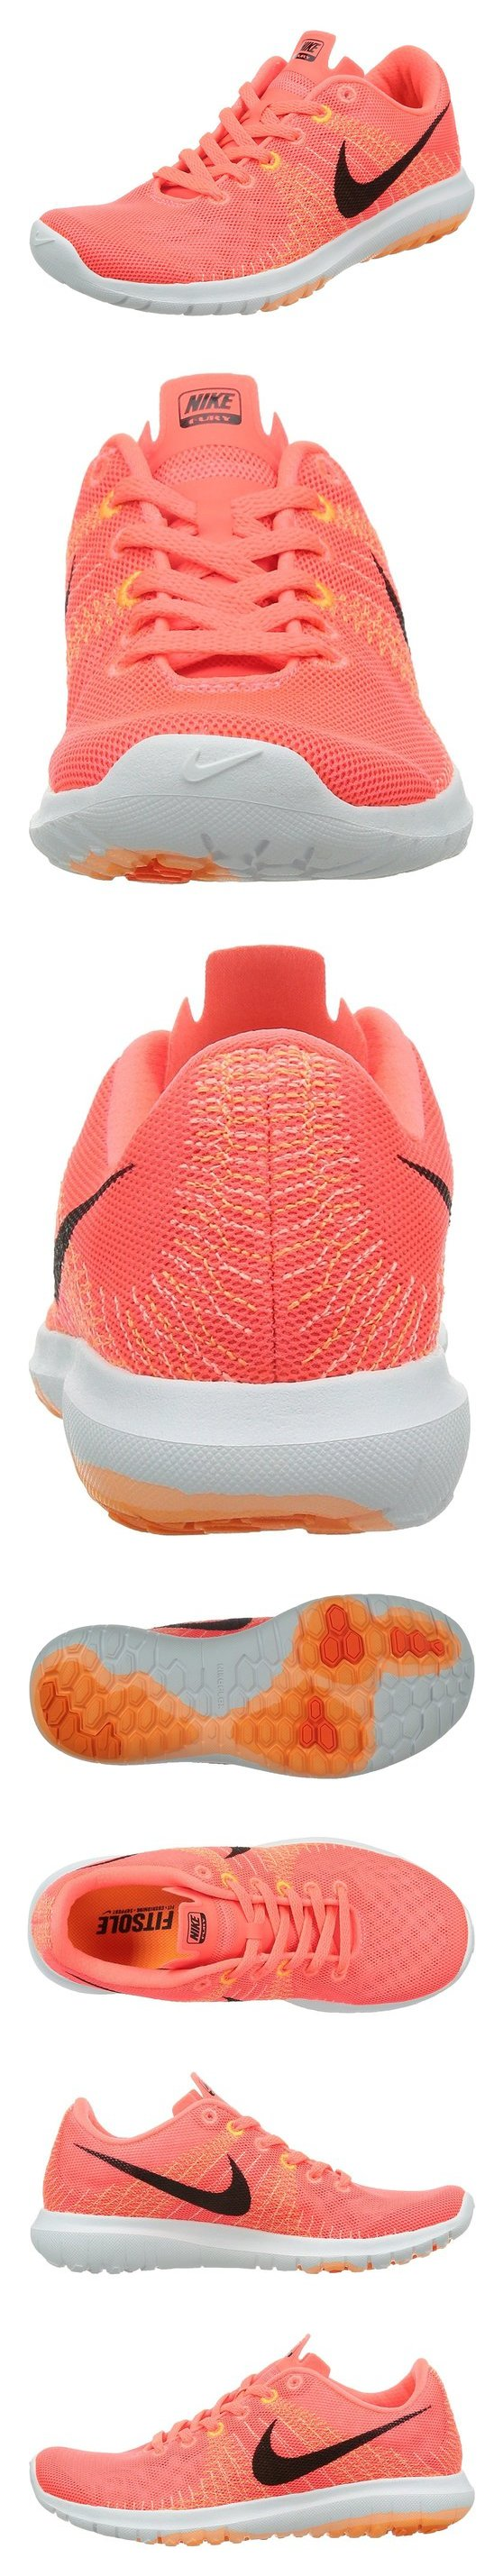 ca1435dadd95  64.13 - Nike Women s Flex Fury Running Shoe Hot Lava Sunset Glow Bright  Citrus Black  nike